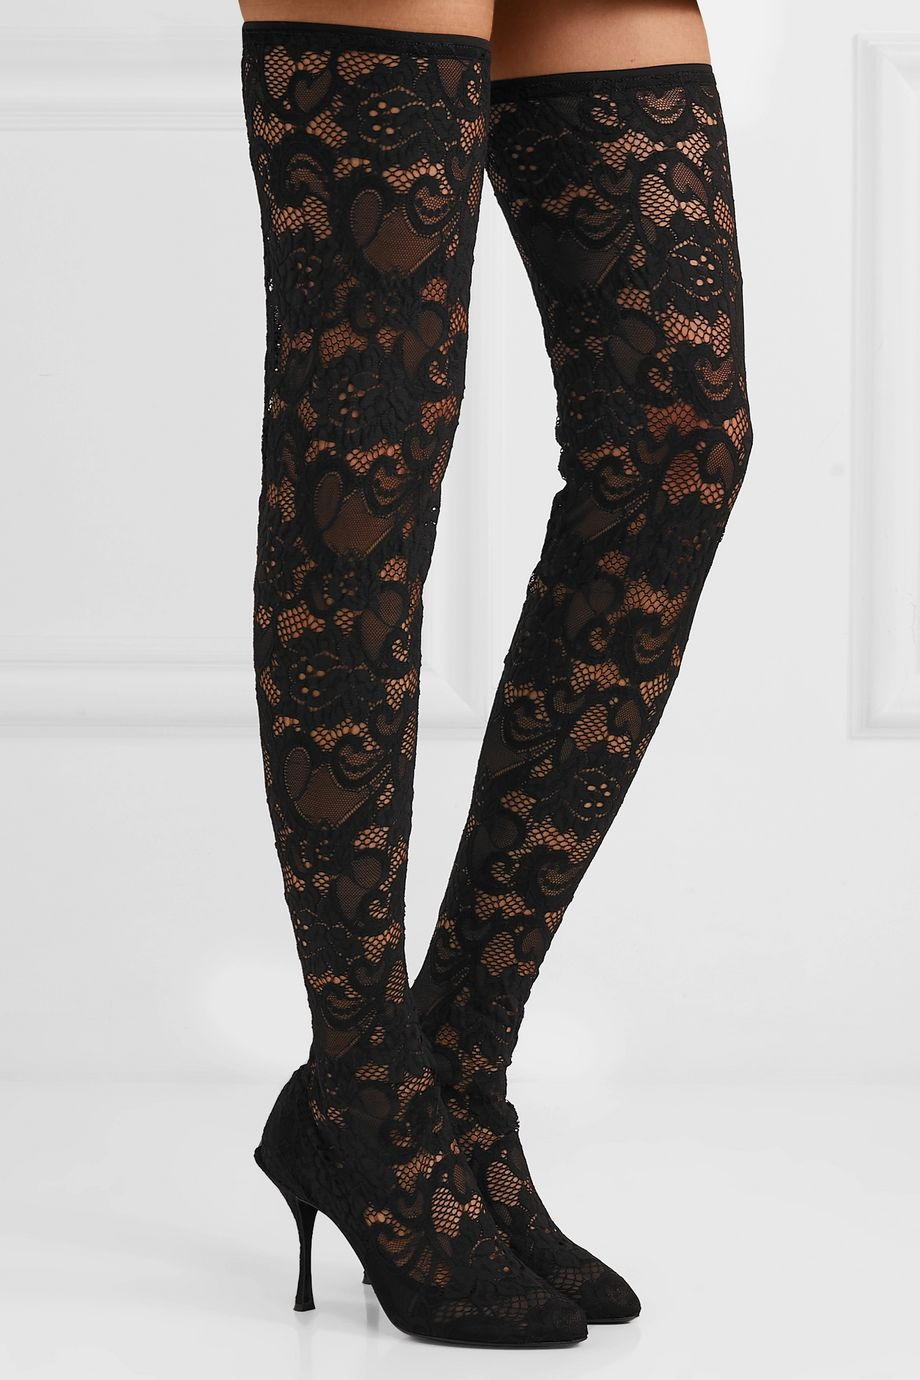 Dolce & Gabbana Stretch-lace and tulle over-the-knee sock boots